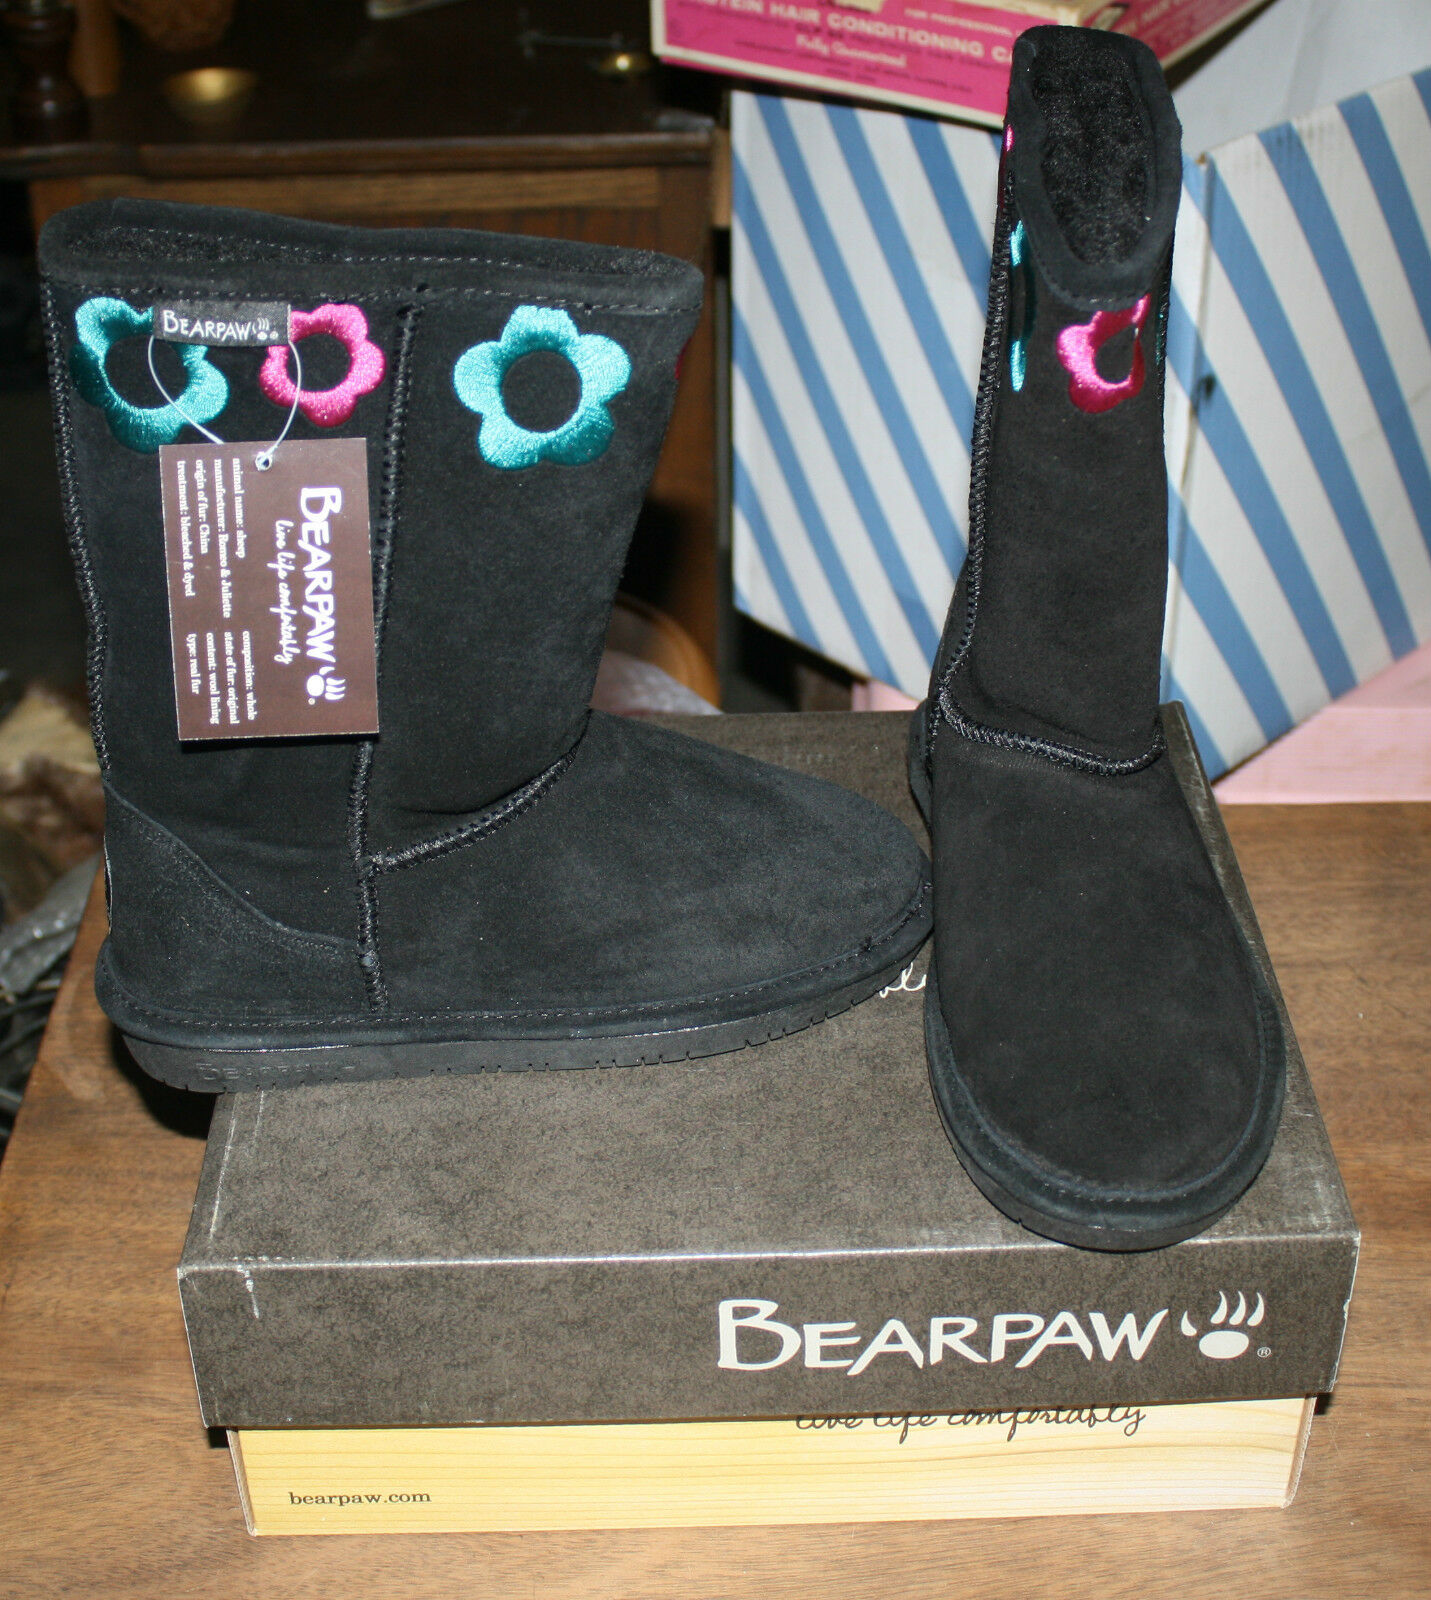 BEARPAW JESSIE WINTER BOOTS YOUTH SIZE 11 BLACK NEW IN BOX FREE SHIPPING